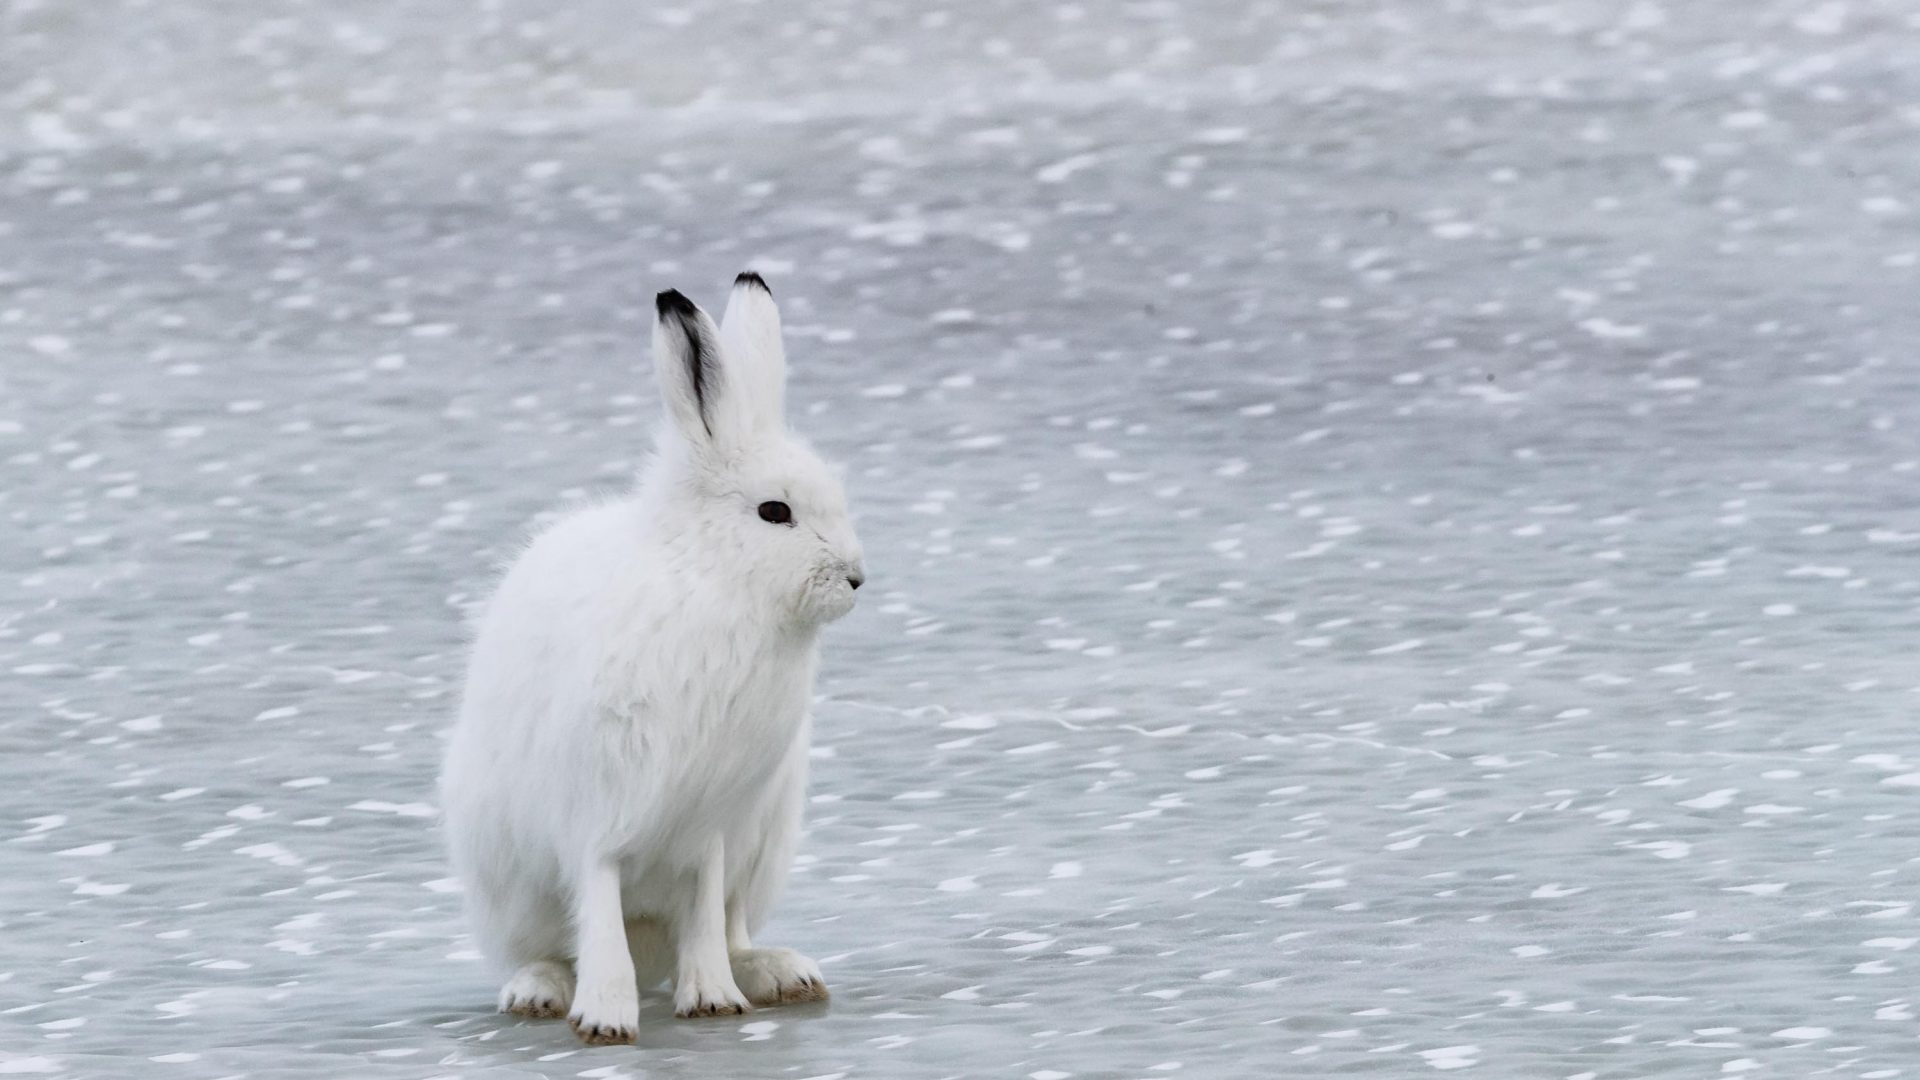 In northern Manitoba, Canada, the hares are larger than their southern cousins. This one was the size of a small dog.